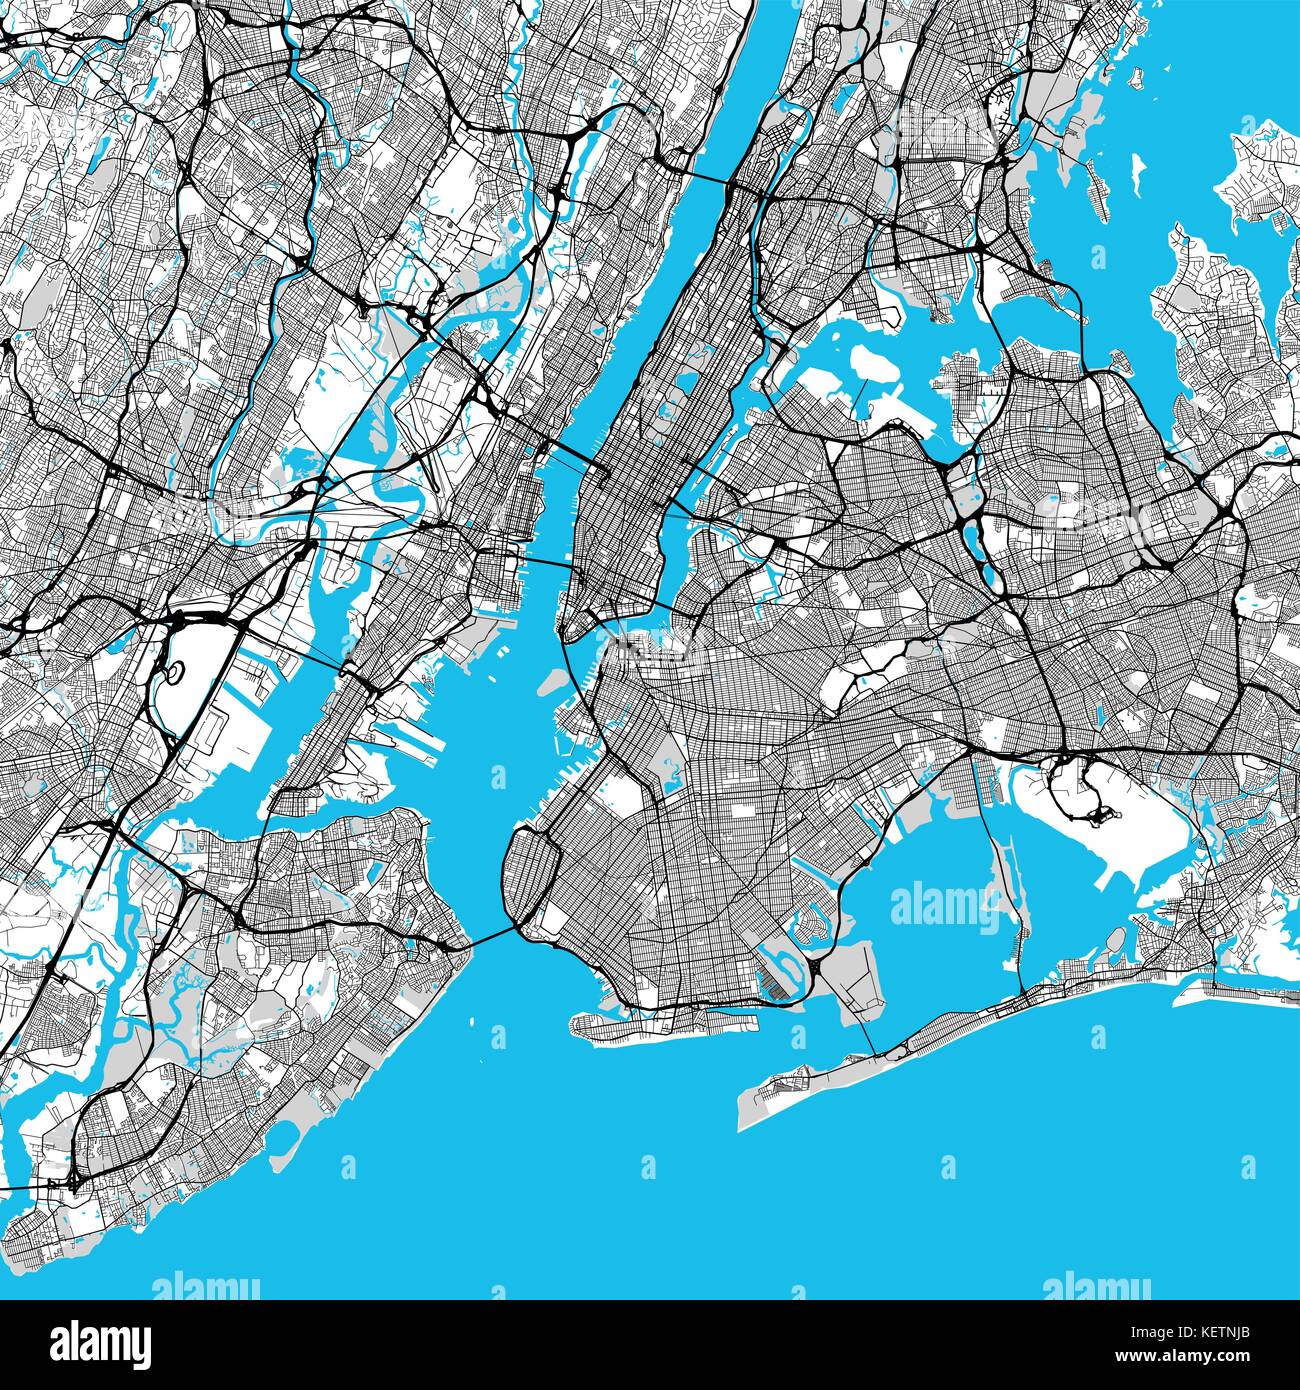 new york city big area map downtown manhattan brooklyn jersay city in very rich details very large vector file